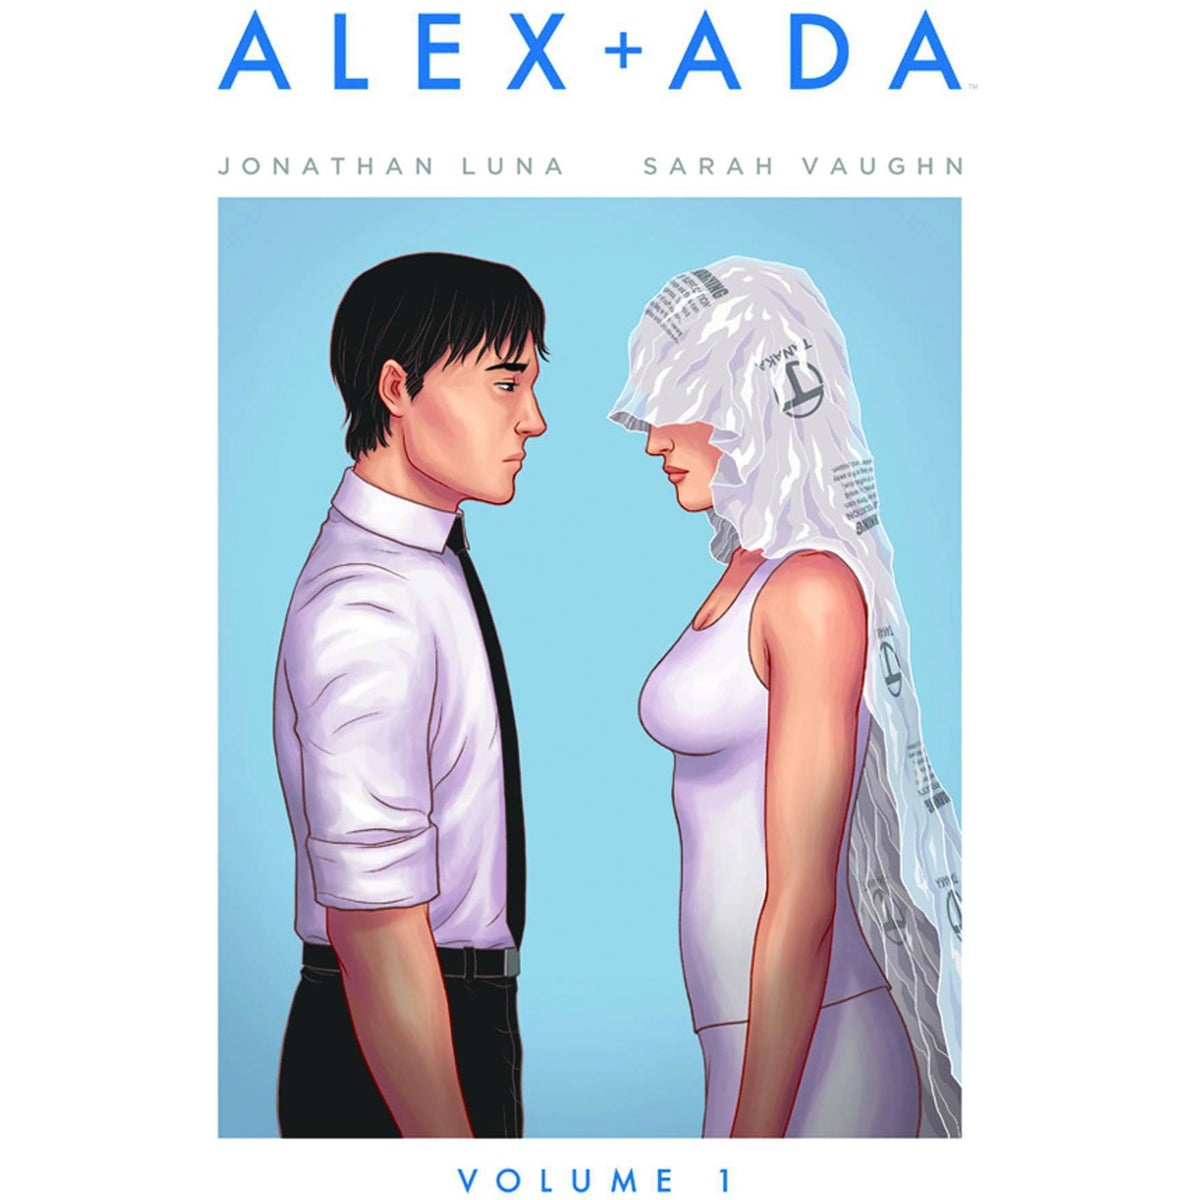 ALEX + ADA VOLUME 1